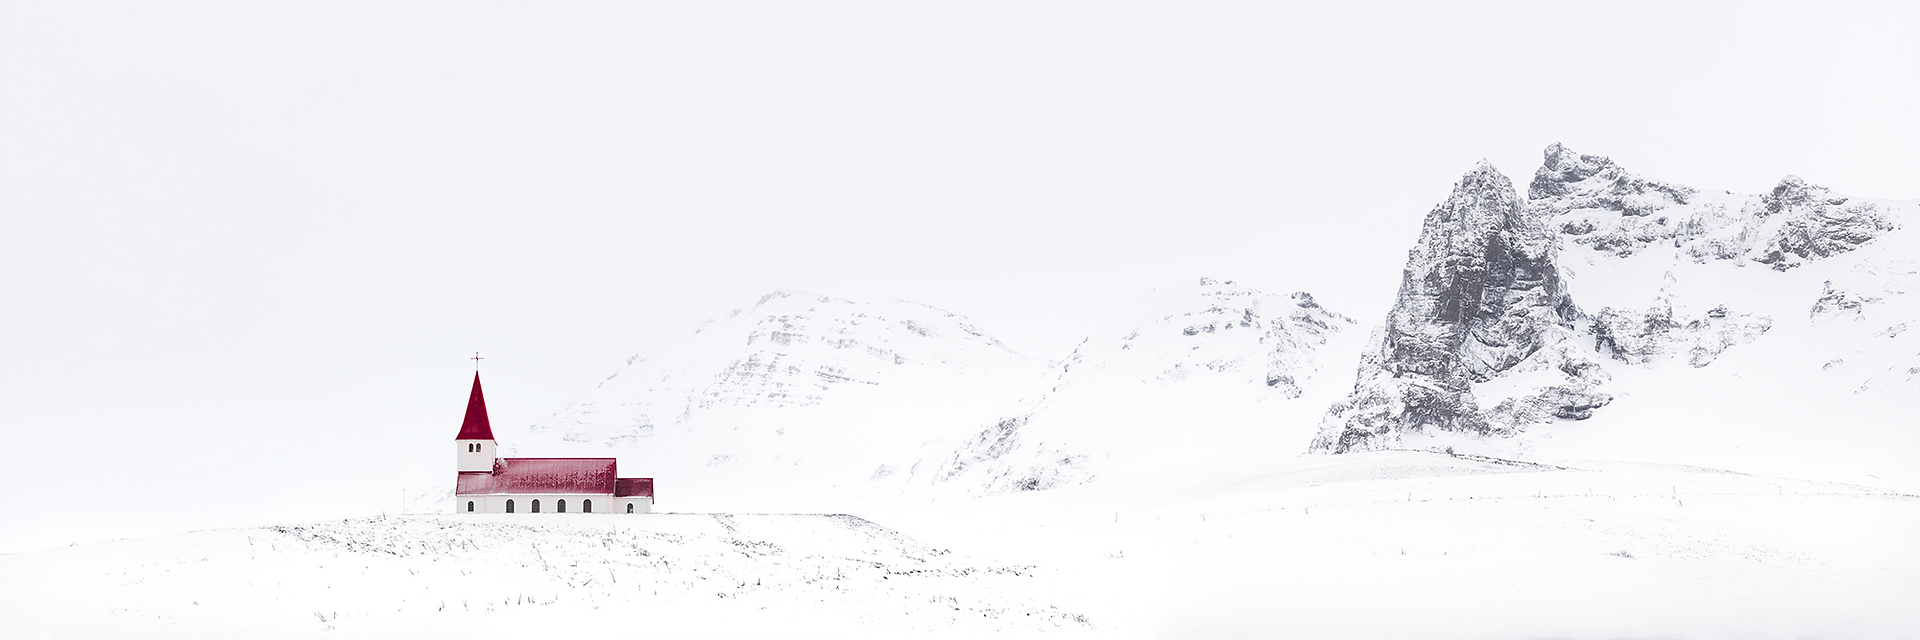 Whiteout, South Iceland